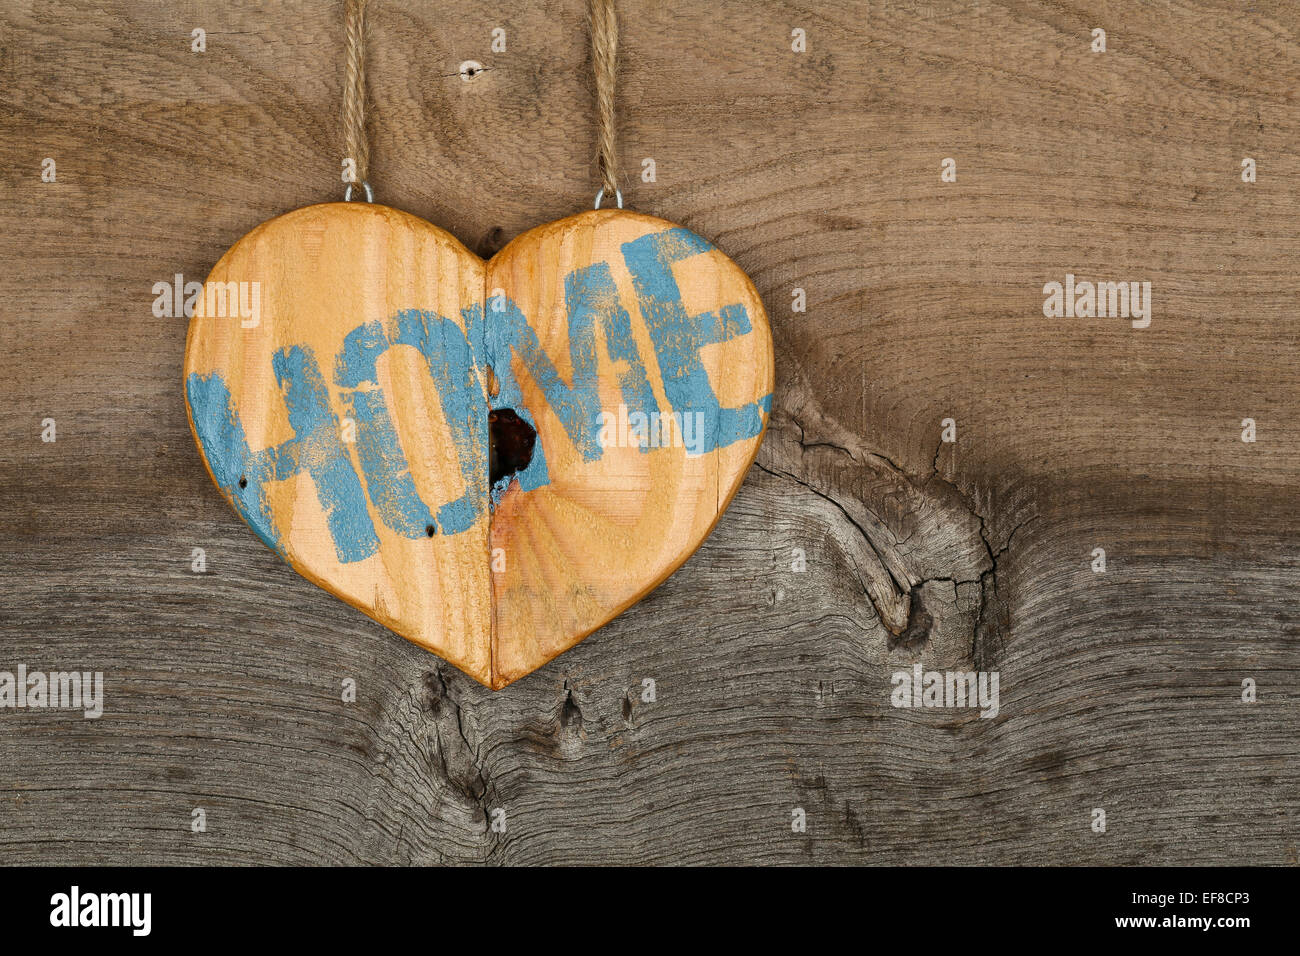 Love Home message wooden heart sign from recycled old palette on rough grey wooden background, copy space - Stock Image